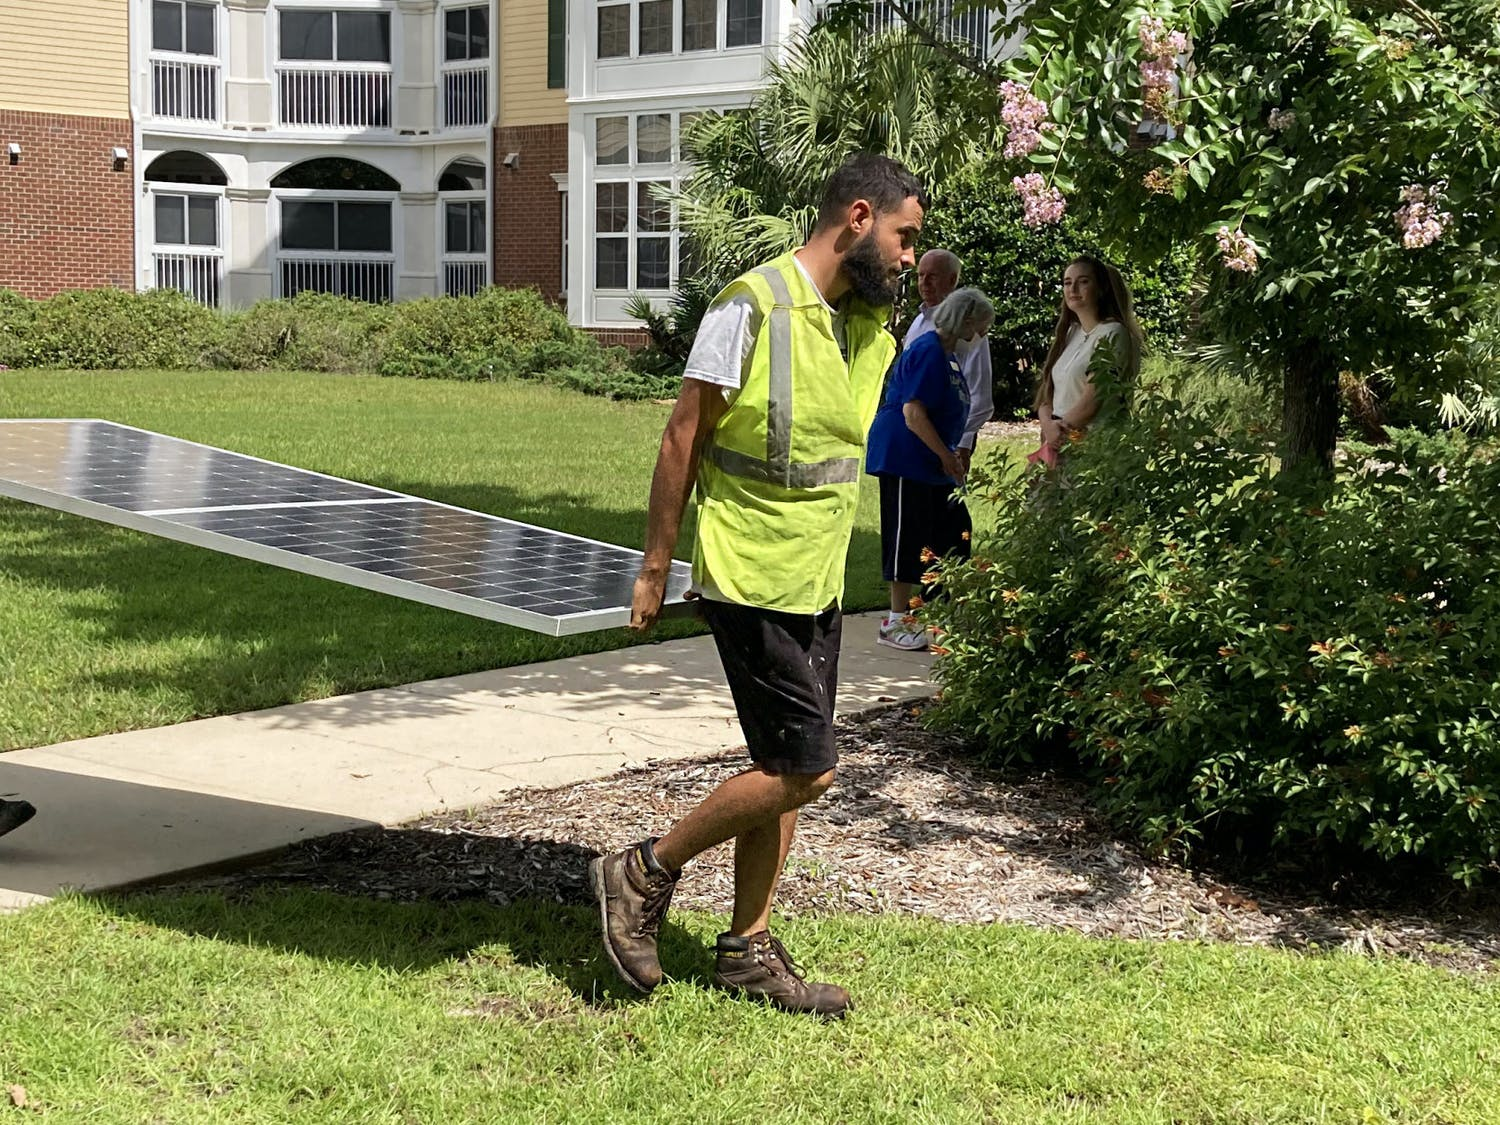 Workers lift up the first solar panel installed on the rooftops of Oak Hammock at the University of Florida on Tuesday, July 20, 2021.